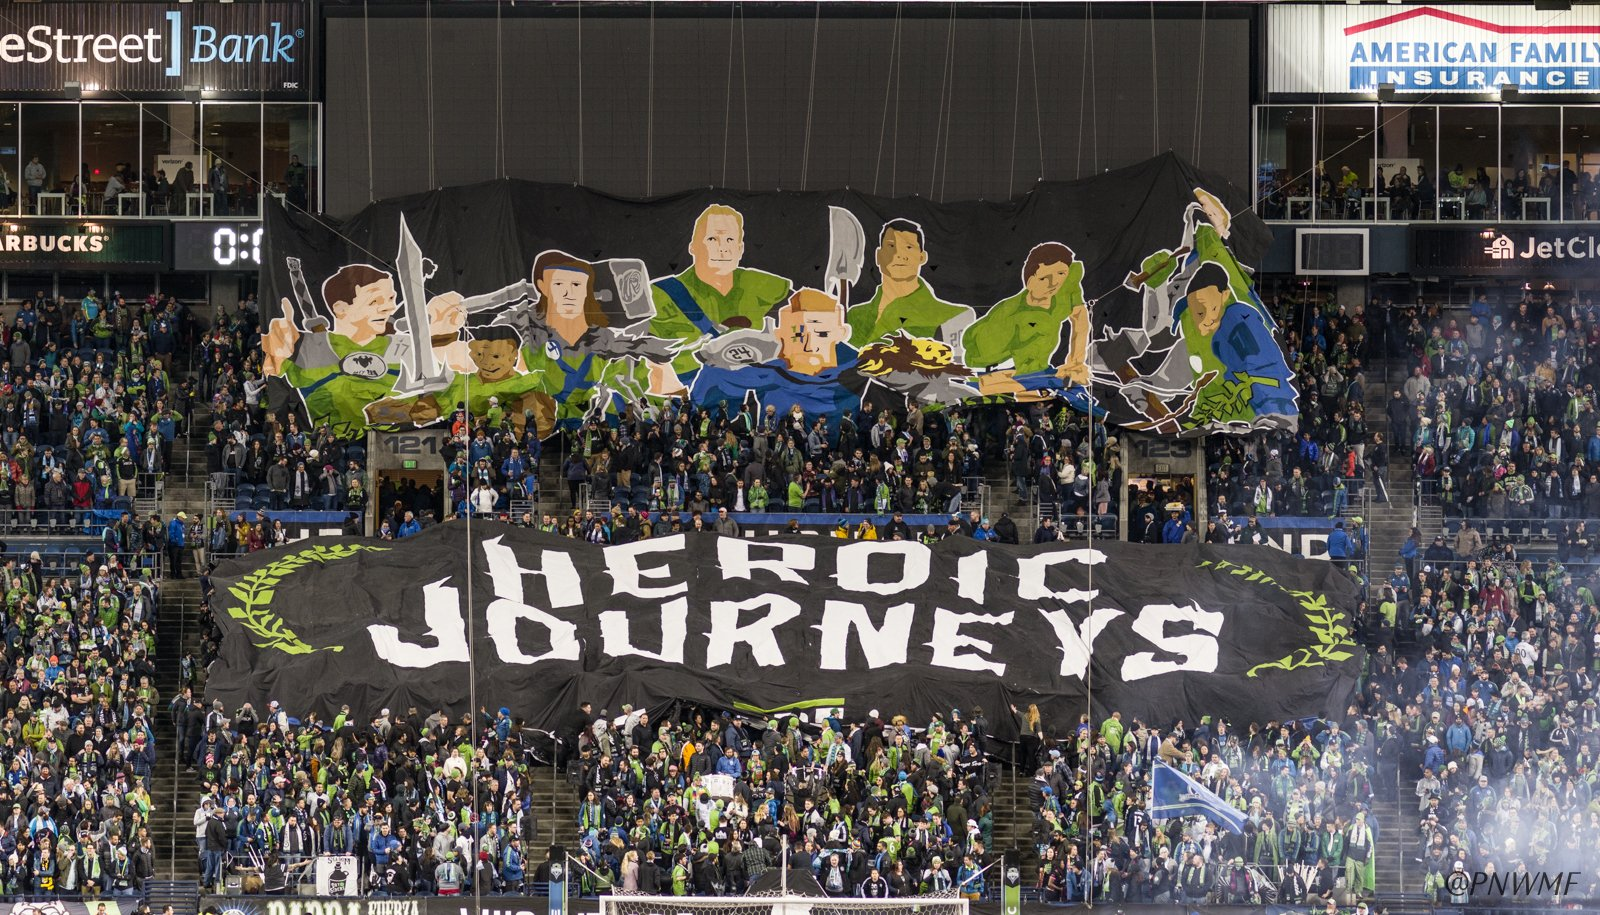 76269d27628 The Sounders warriors set out today on the heroic journey of the 2019  season. Over the next 9 months, they will fight for our city, our people  and our crest ...